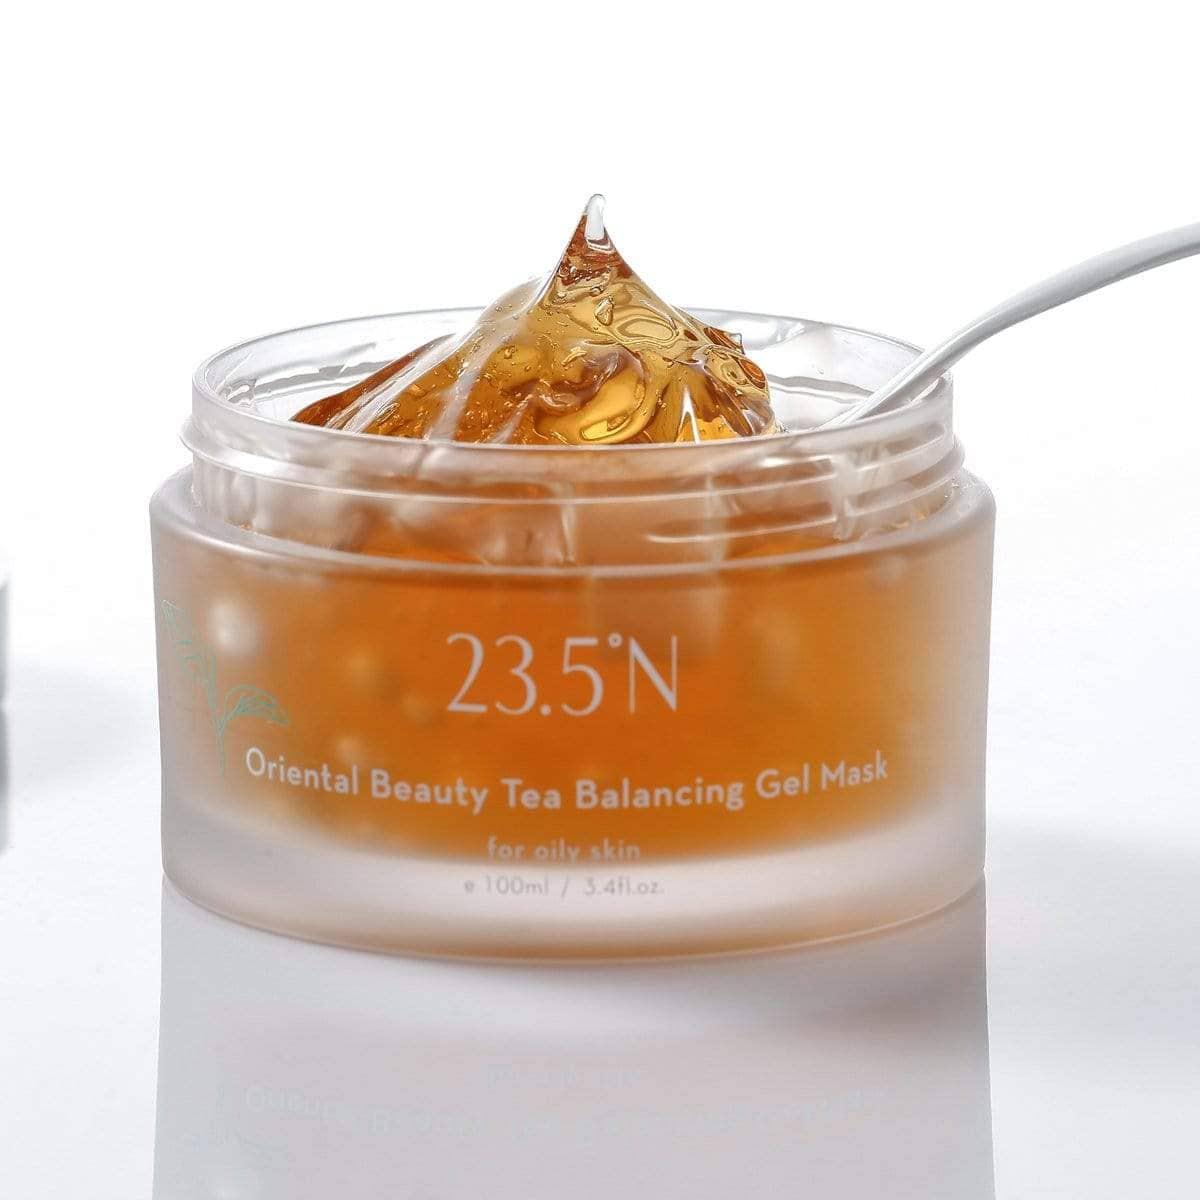 23.5N Oriental Beauty Tea Balancing Gel Mask